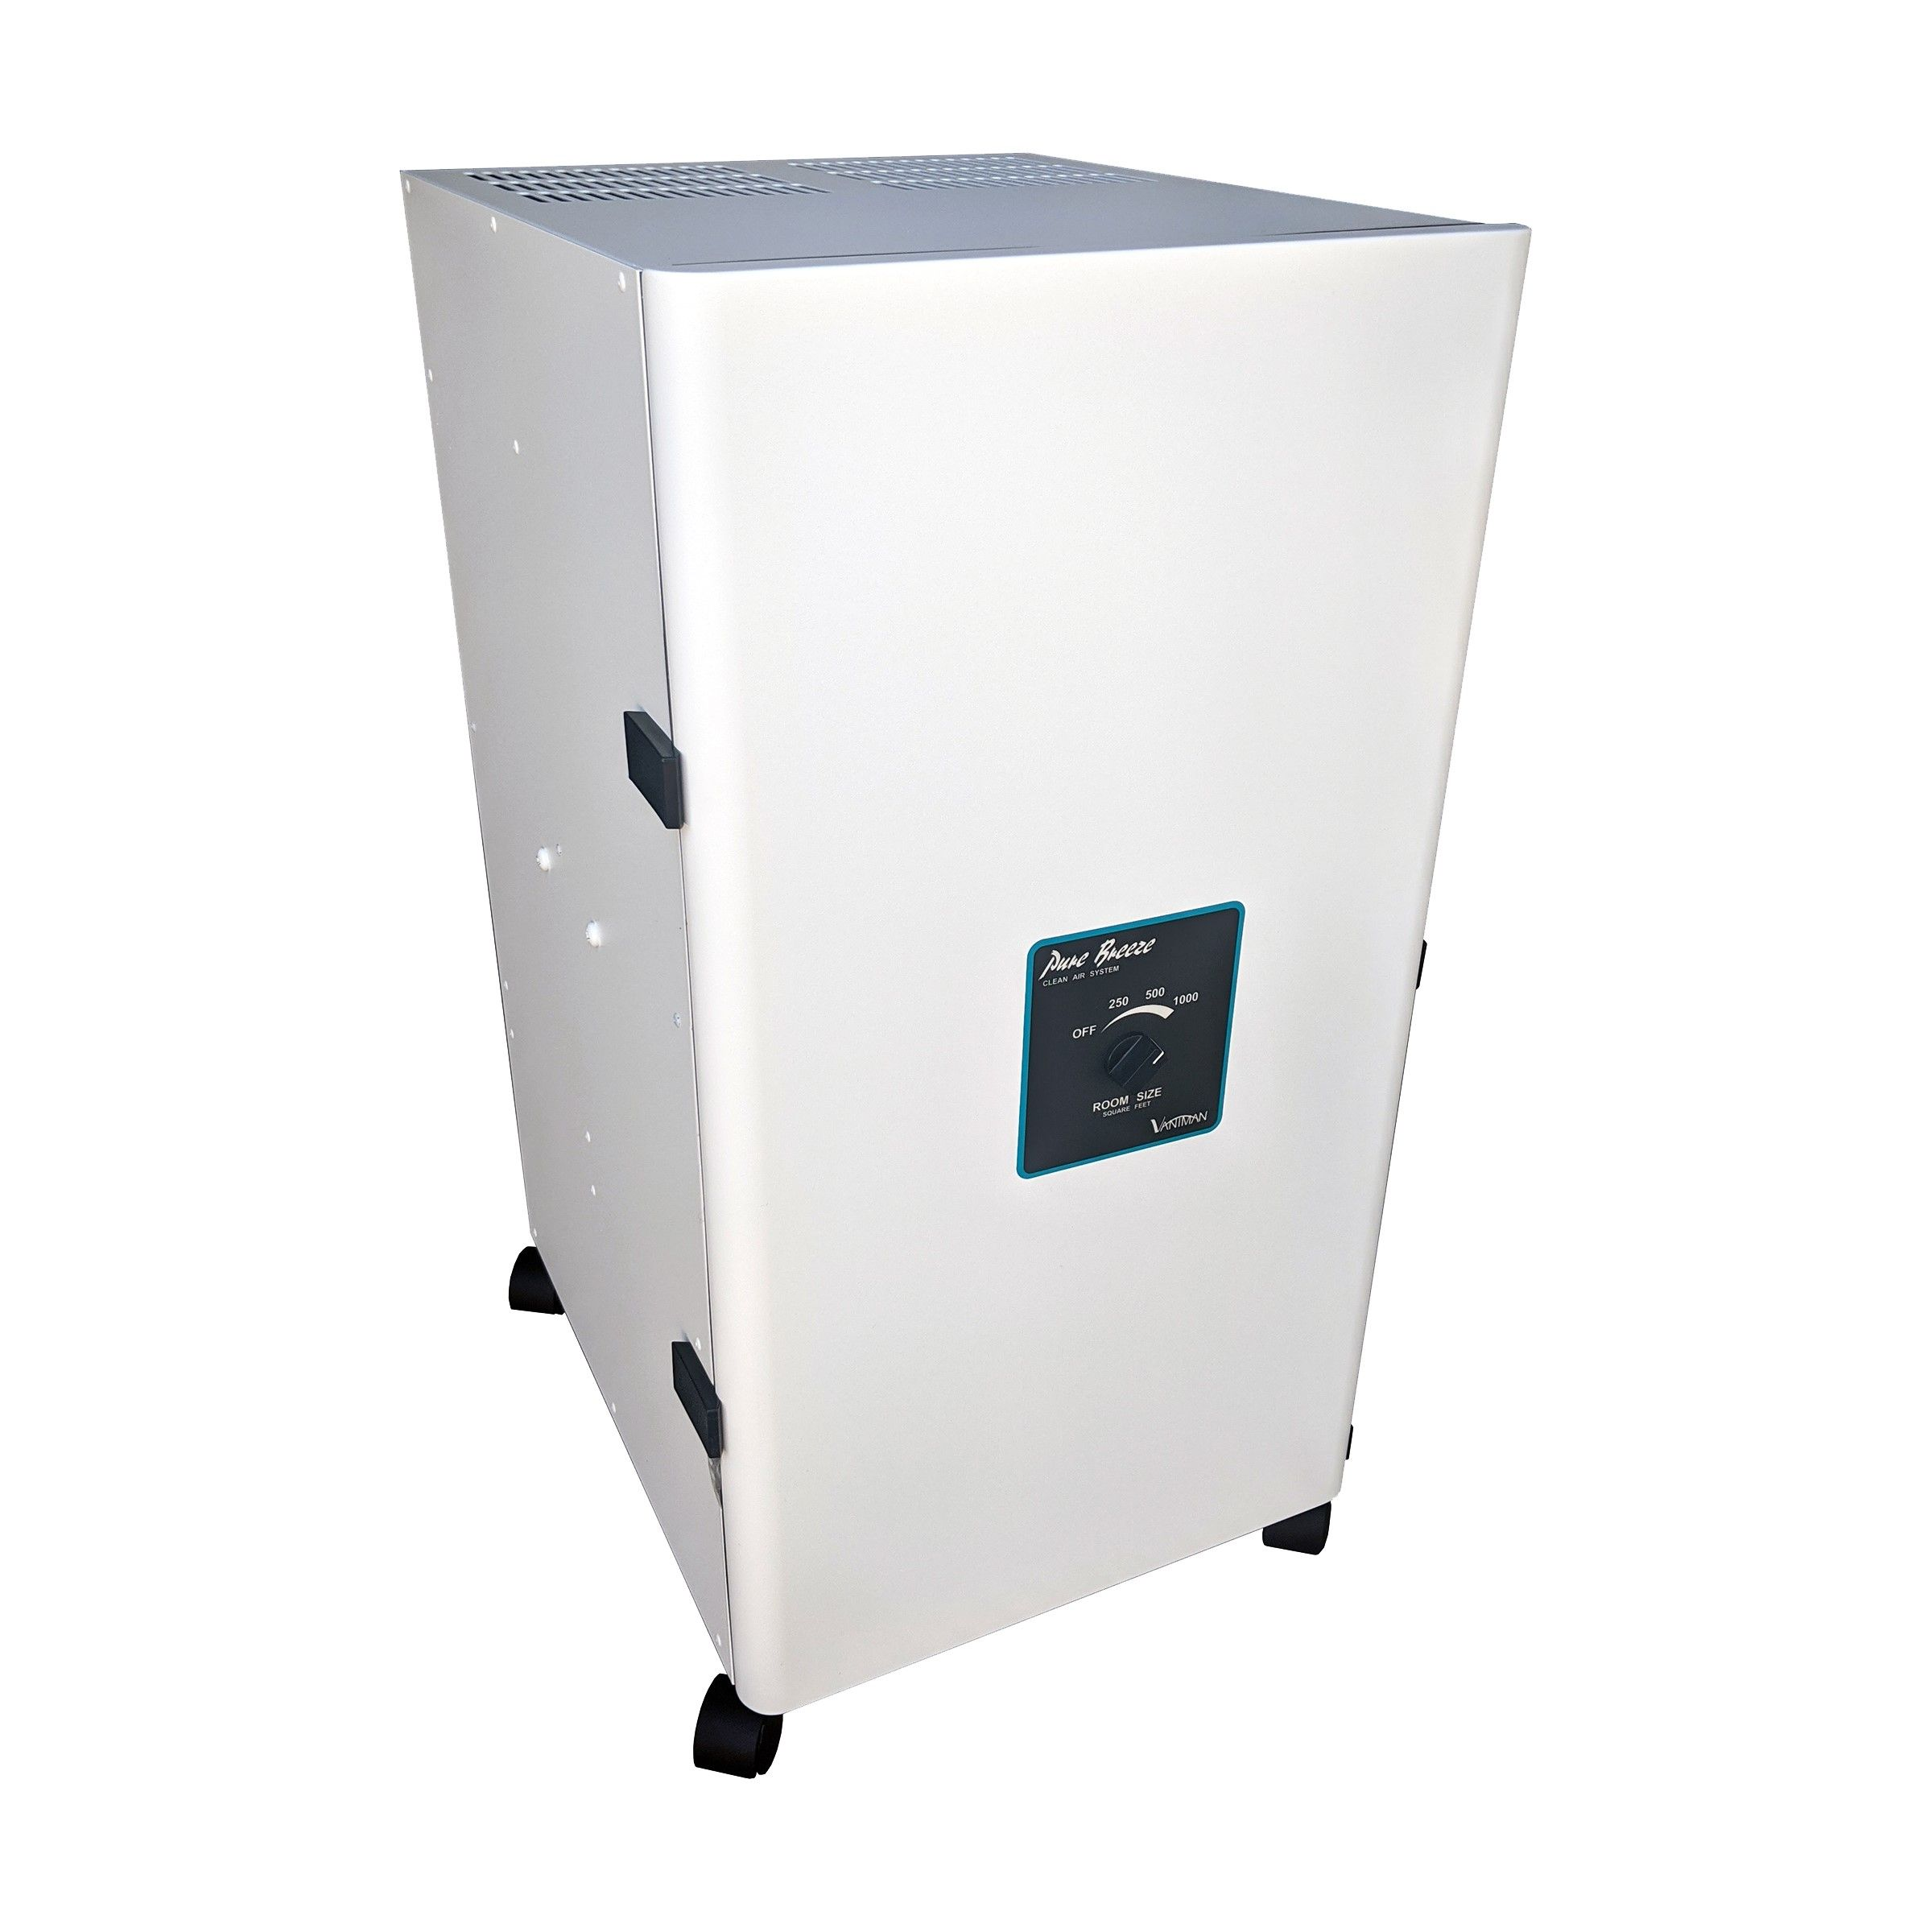 Pure Breeze HEPA Air Purifier from Great Lakes Dental Technologies